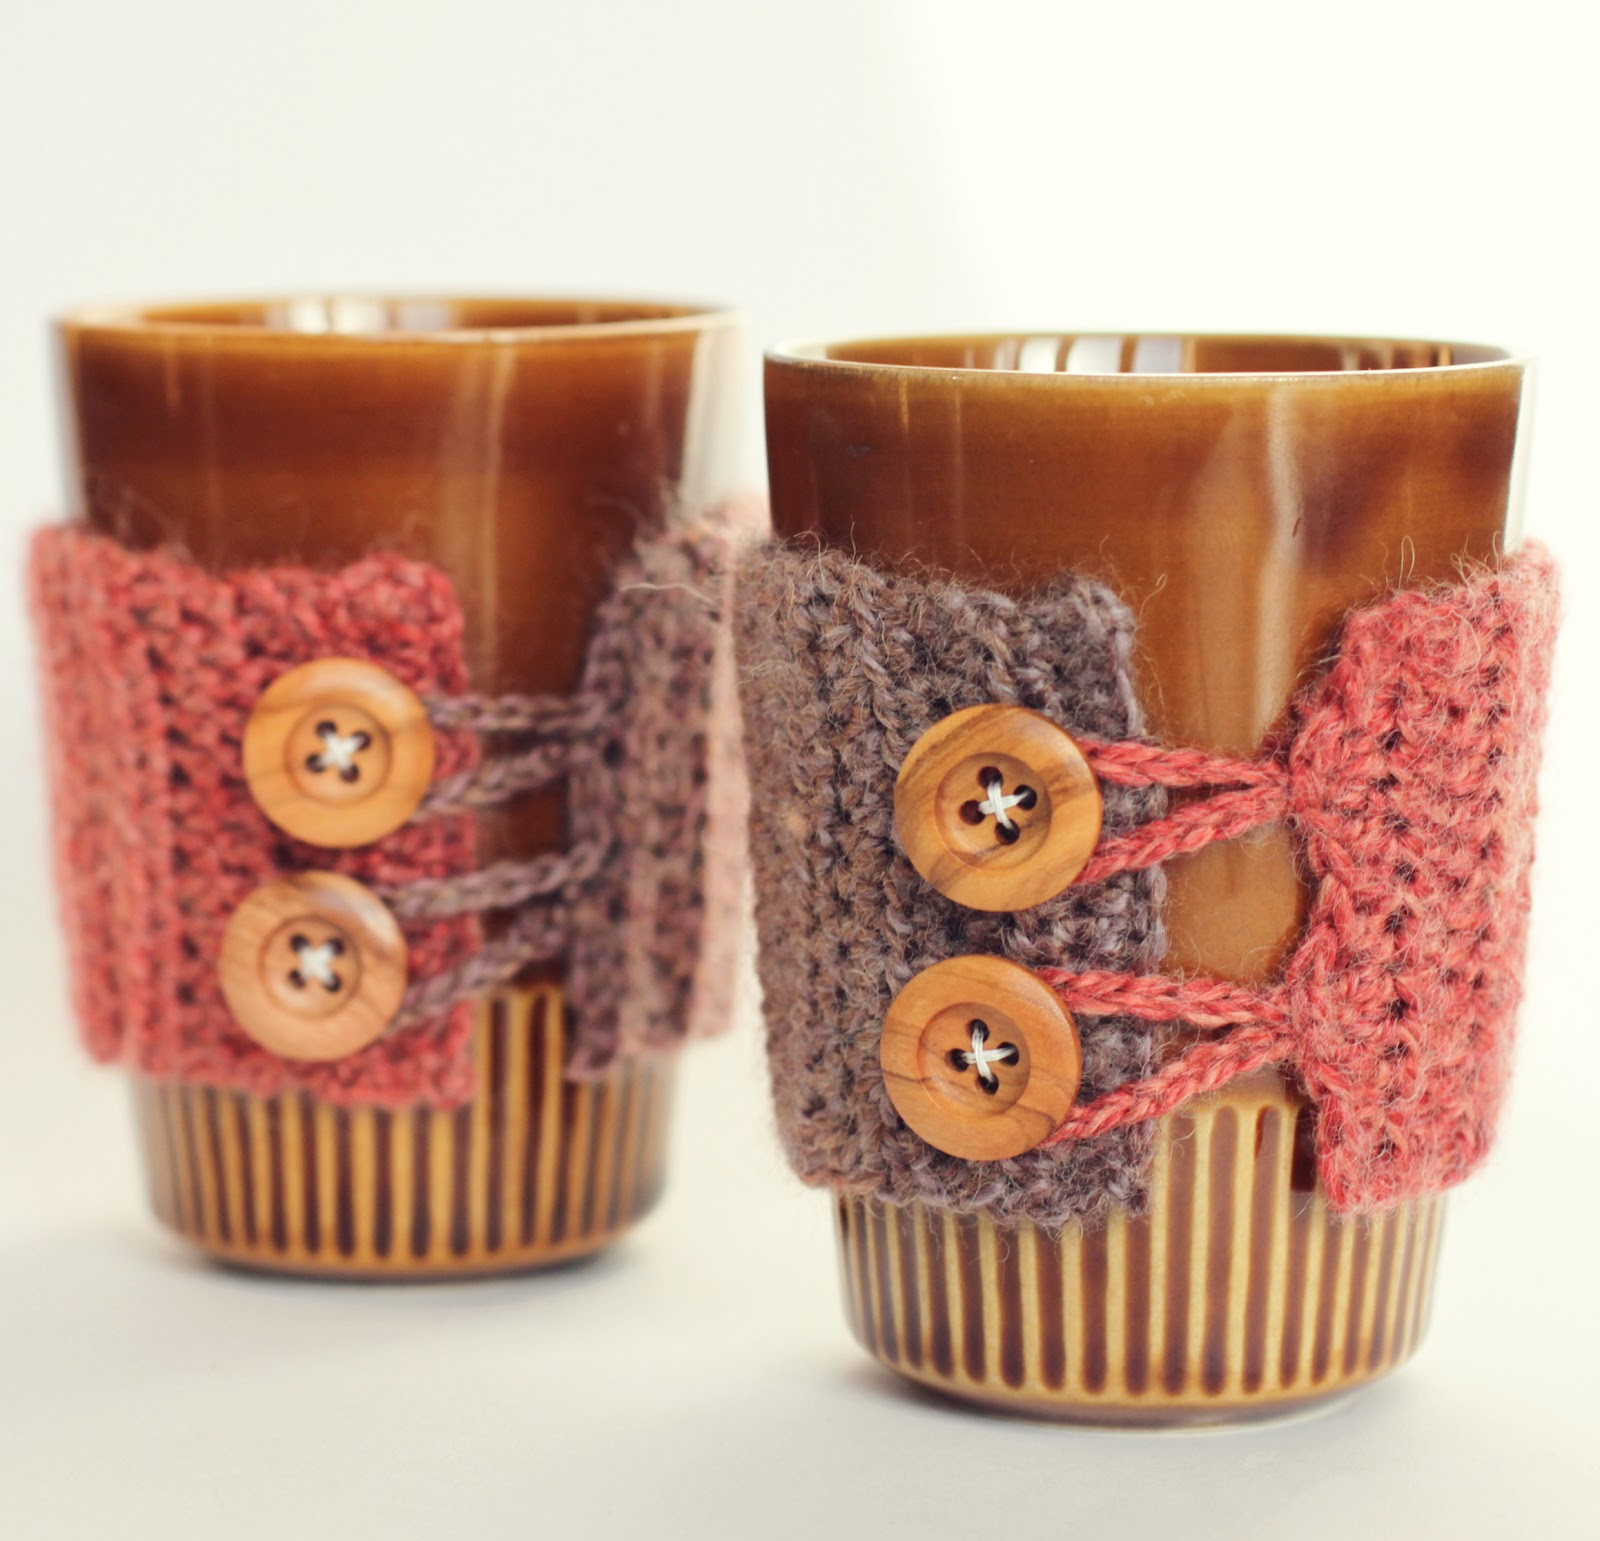 Crochet Coffee Cup Cozy Lovely L♥valizious Mug Cozy Tutorial Of Crochet Coffee Cup Cozy Awesome Free Mug Cozy Crochet Patterns with Worsted Weight Yarn